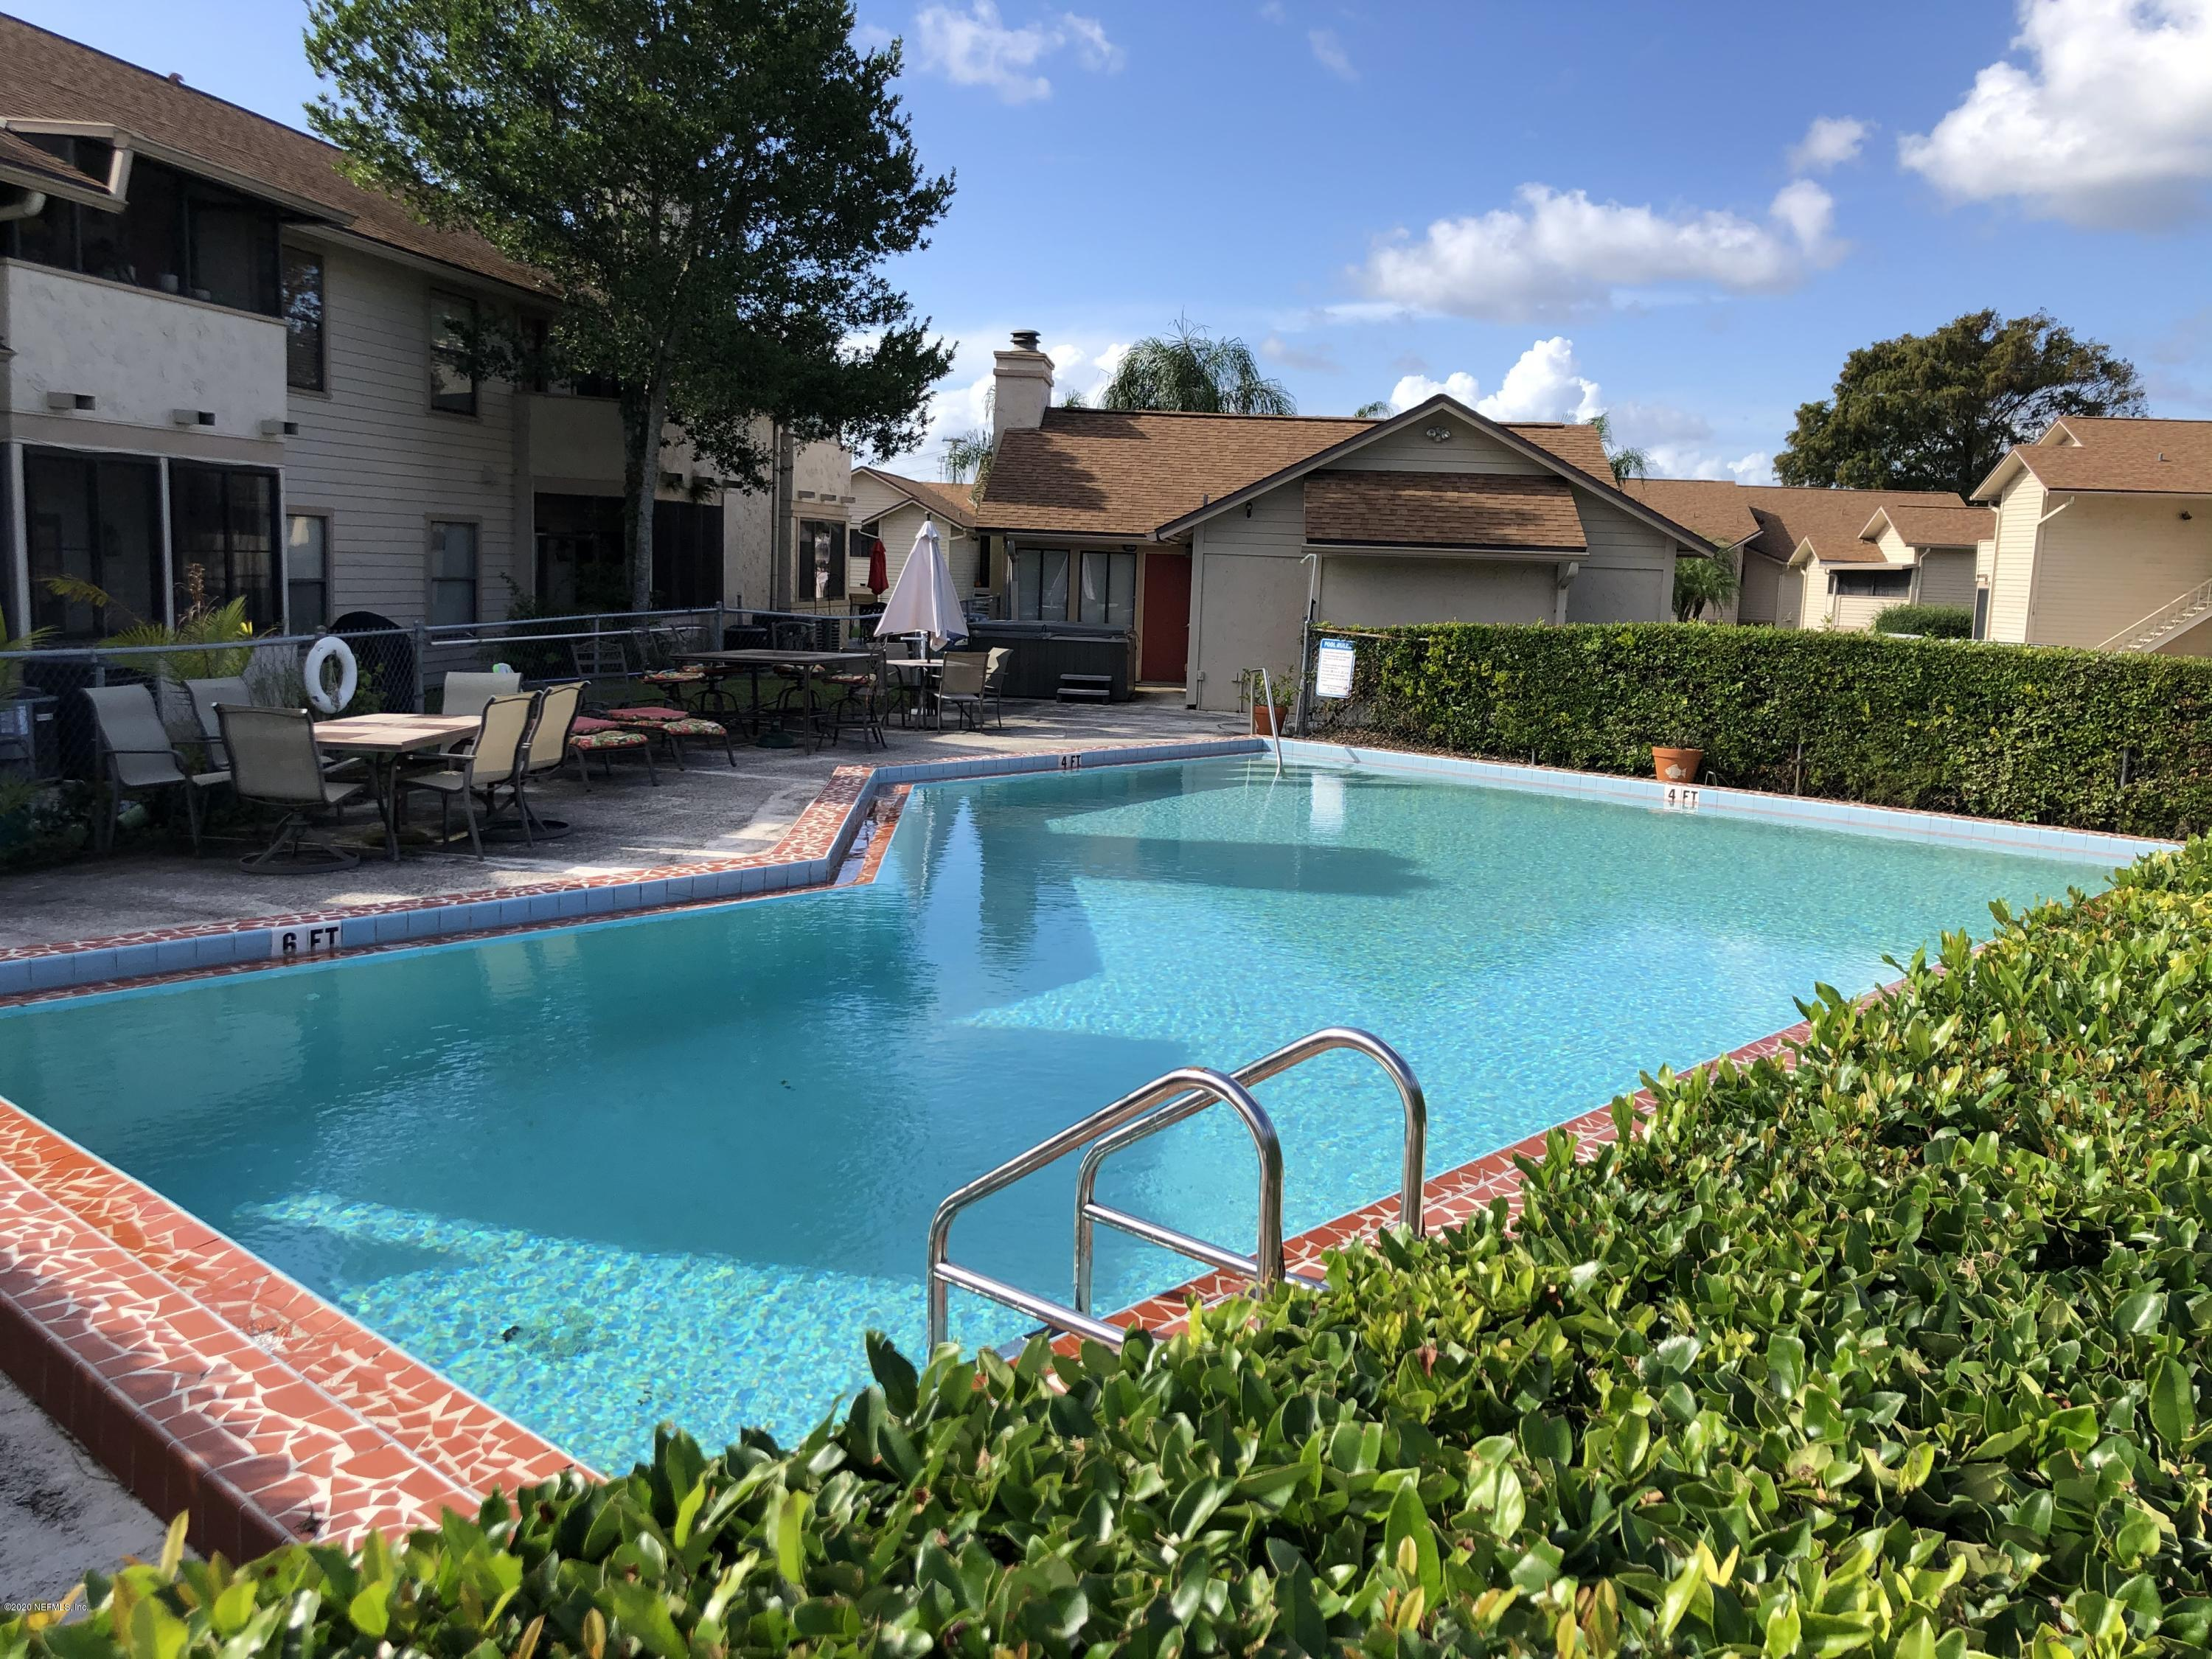 164 GOVERNOR, GREEN COVE SPRINGS, FLORIDA 32043, 1 Bedroom Bedrooms, ,1 BathroomBathrooms,Residential,For sale,GOVERNOR,1081926